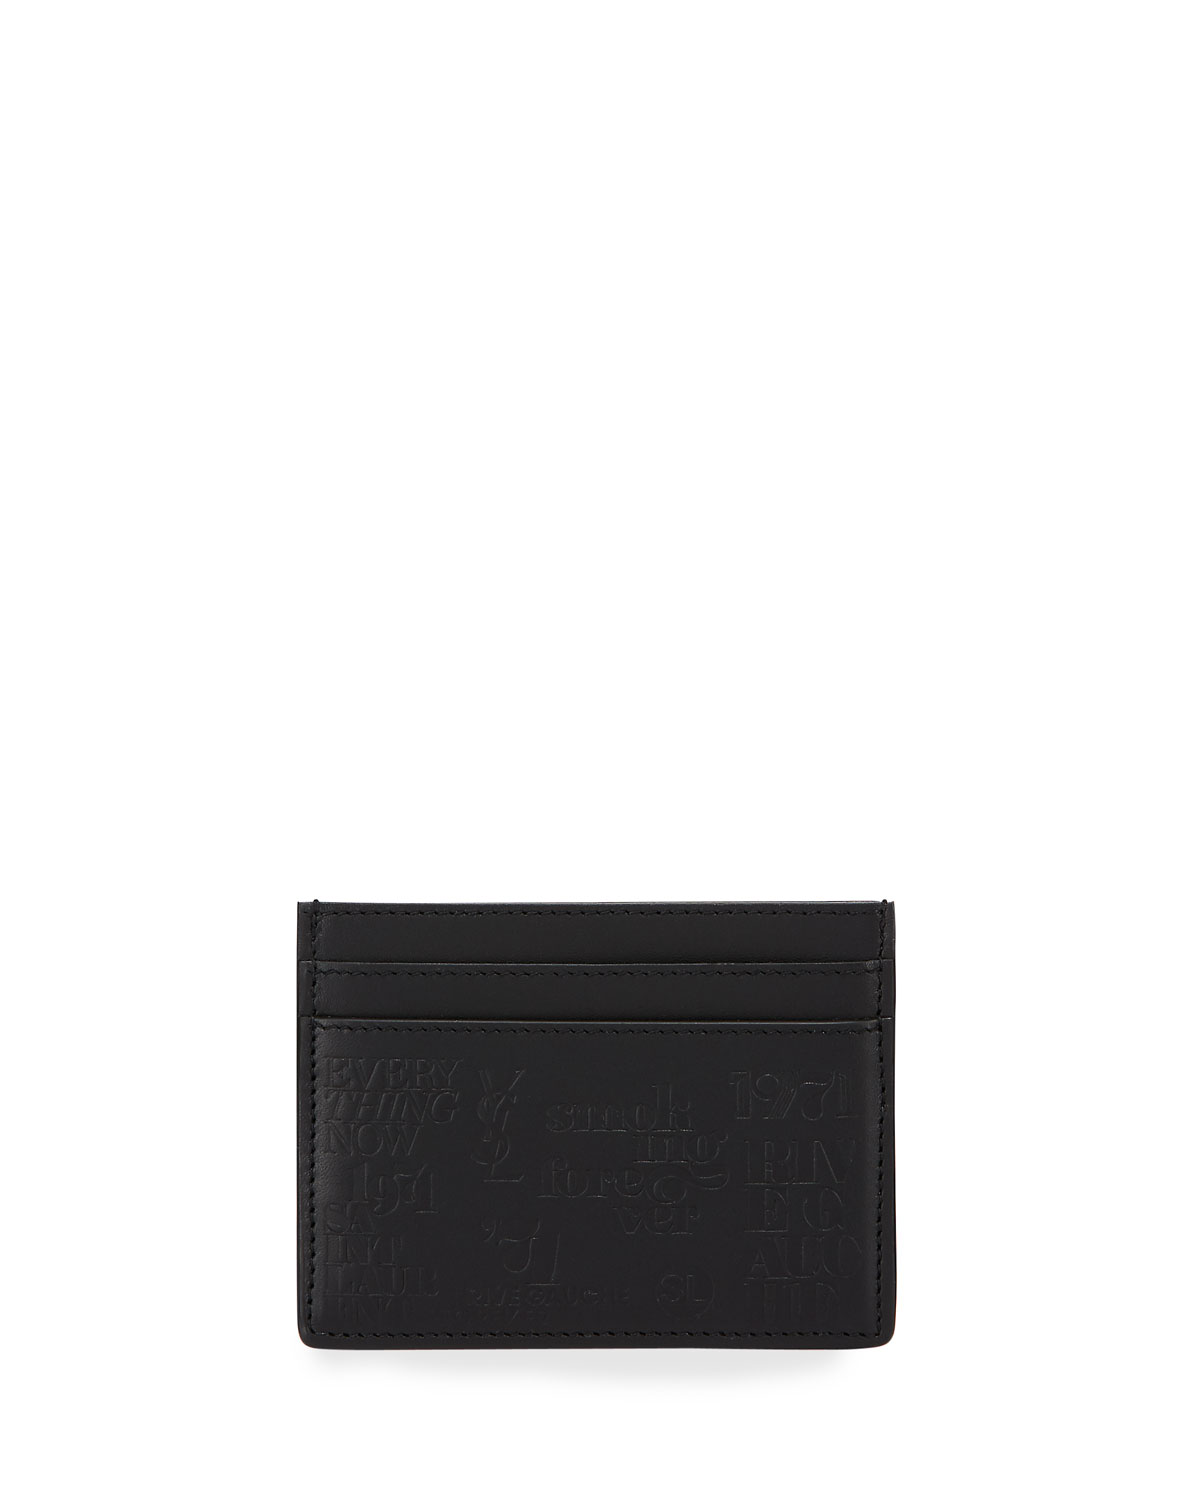 SAINT LAURENT MEN'S 1971 TYPOGRAPHY EMBOSSED LEATHER CARD CASE